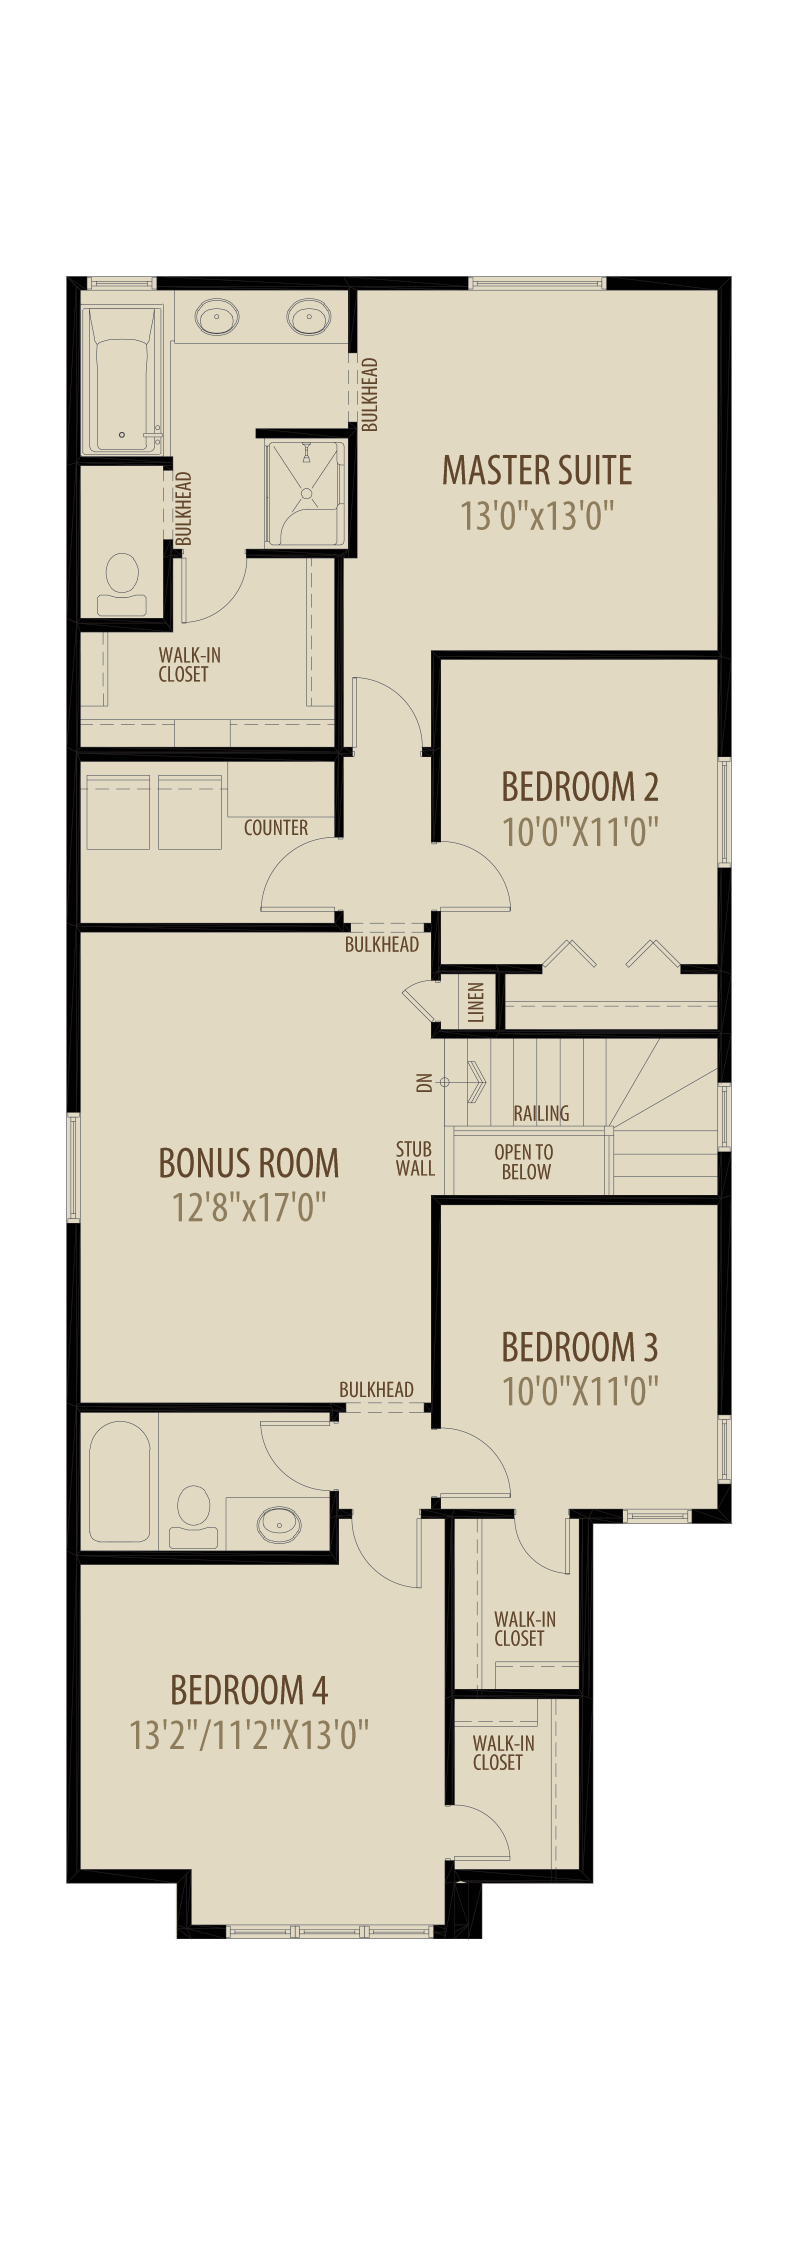 4th Bed Central Bonus Room adds 236 sq ft